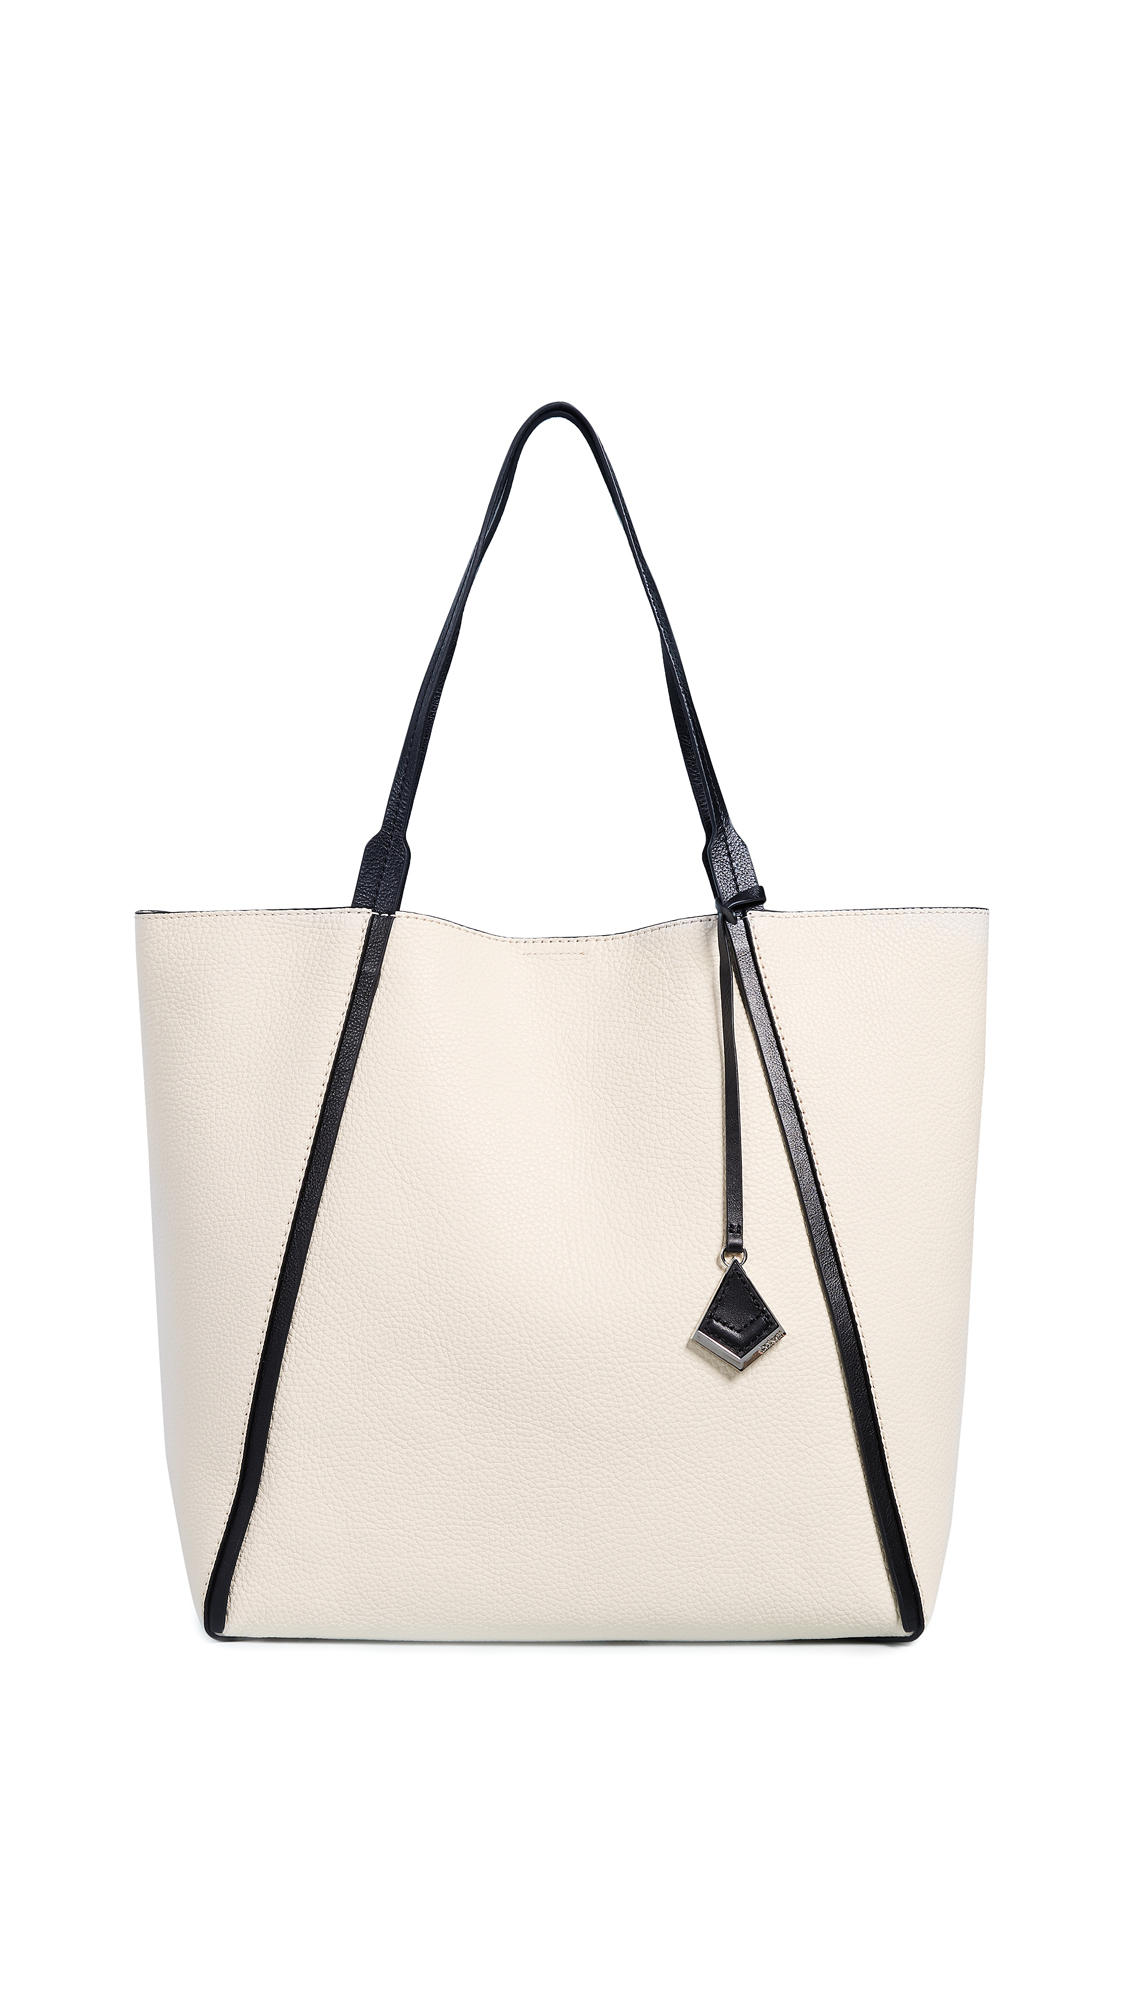 BOTKIER Trinity Calfskin Leather Tote - White in Cream